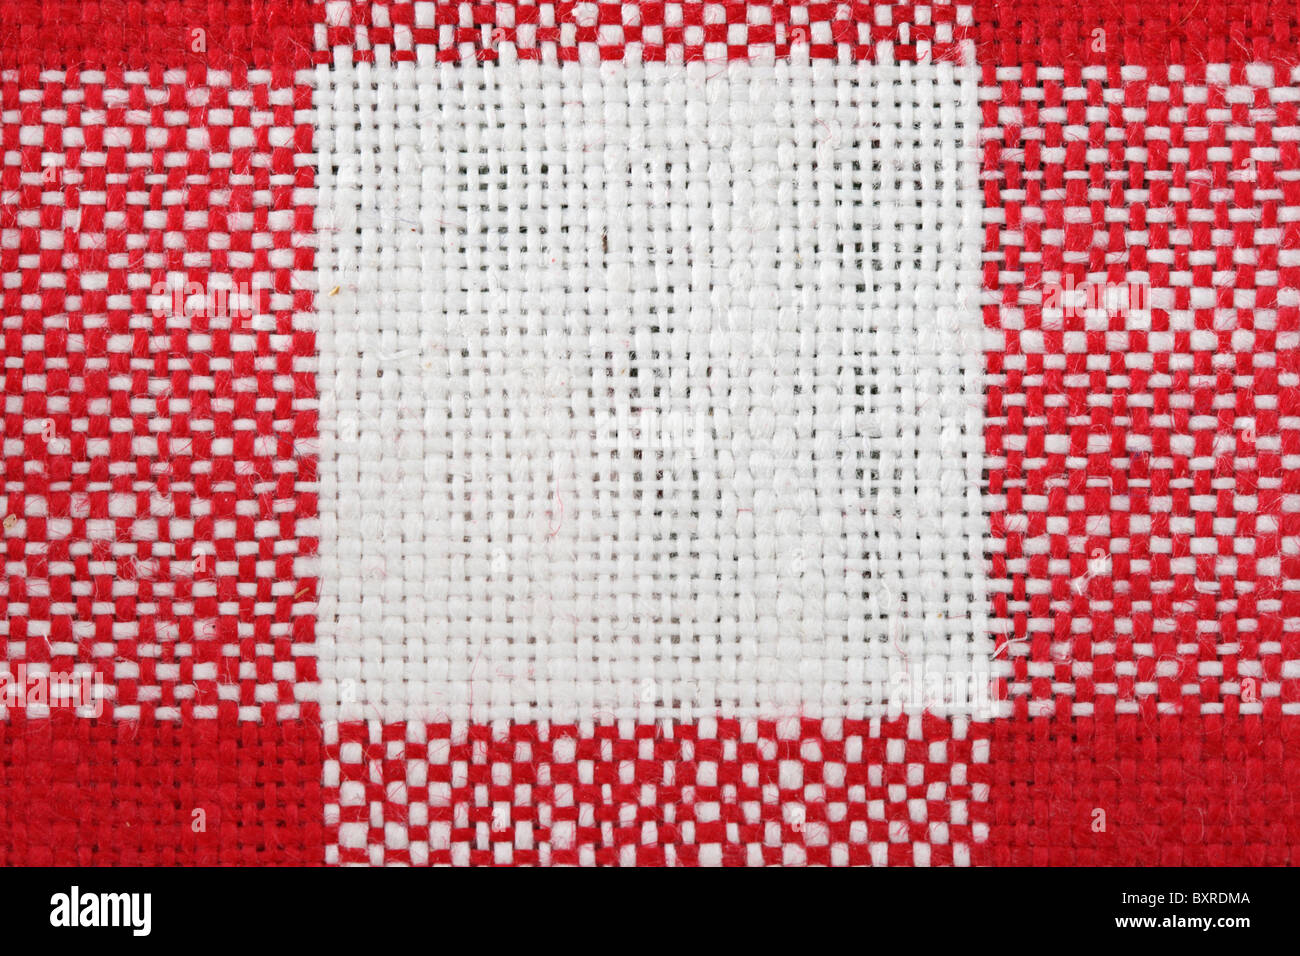 red and white tablecloth macro with a single white square and the surrounding red areas - Stock Image